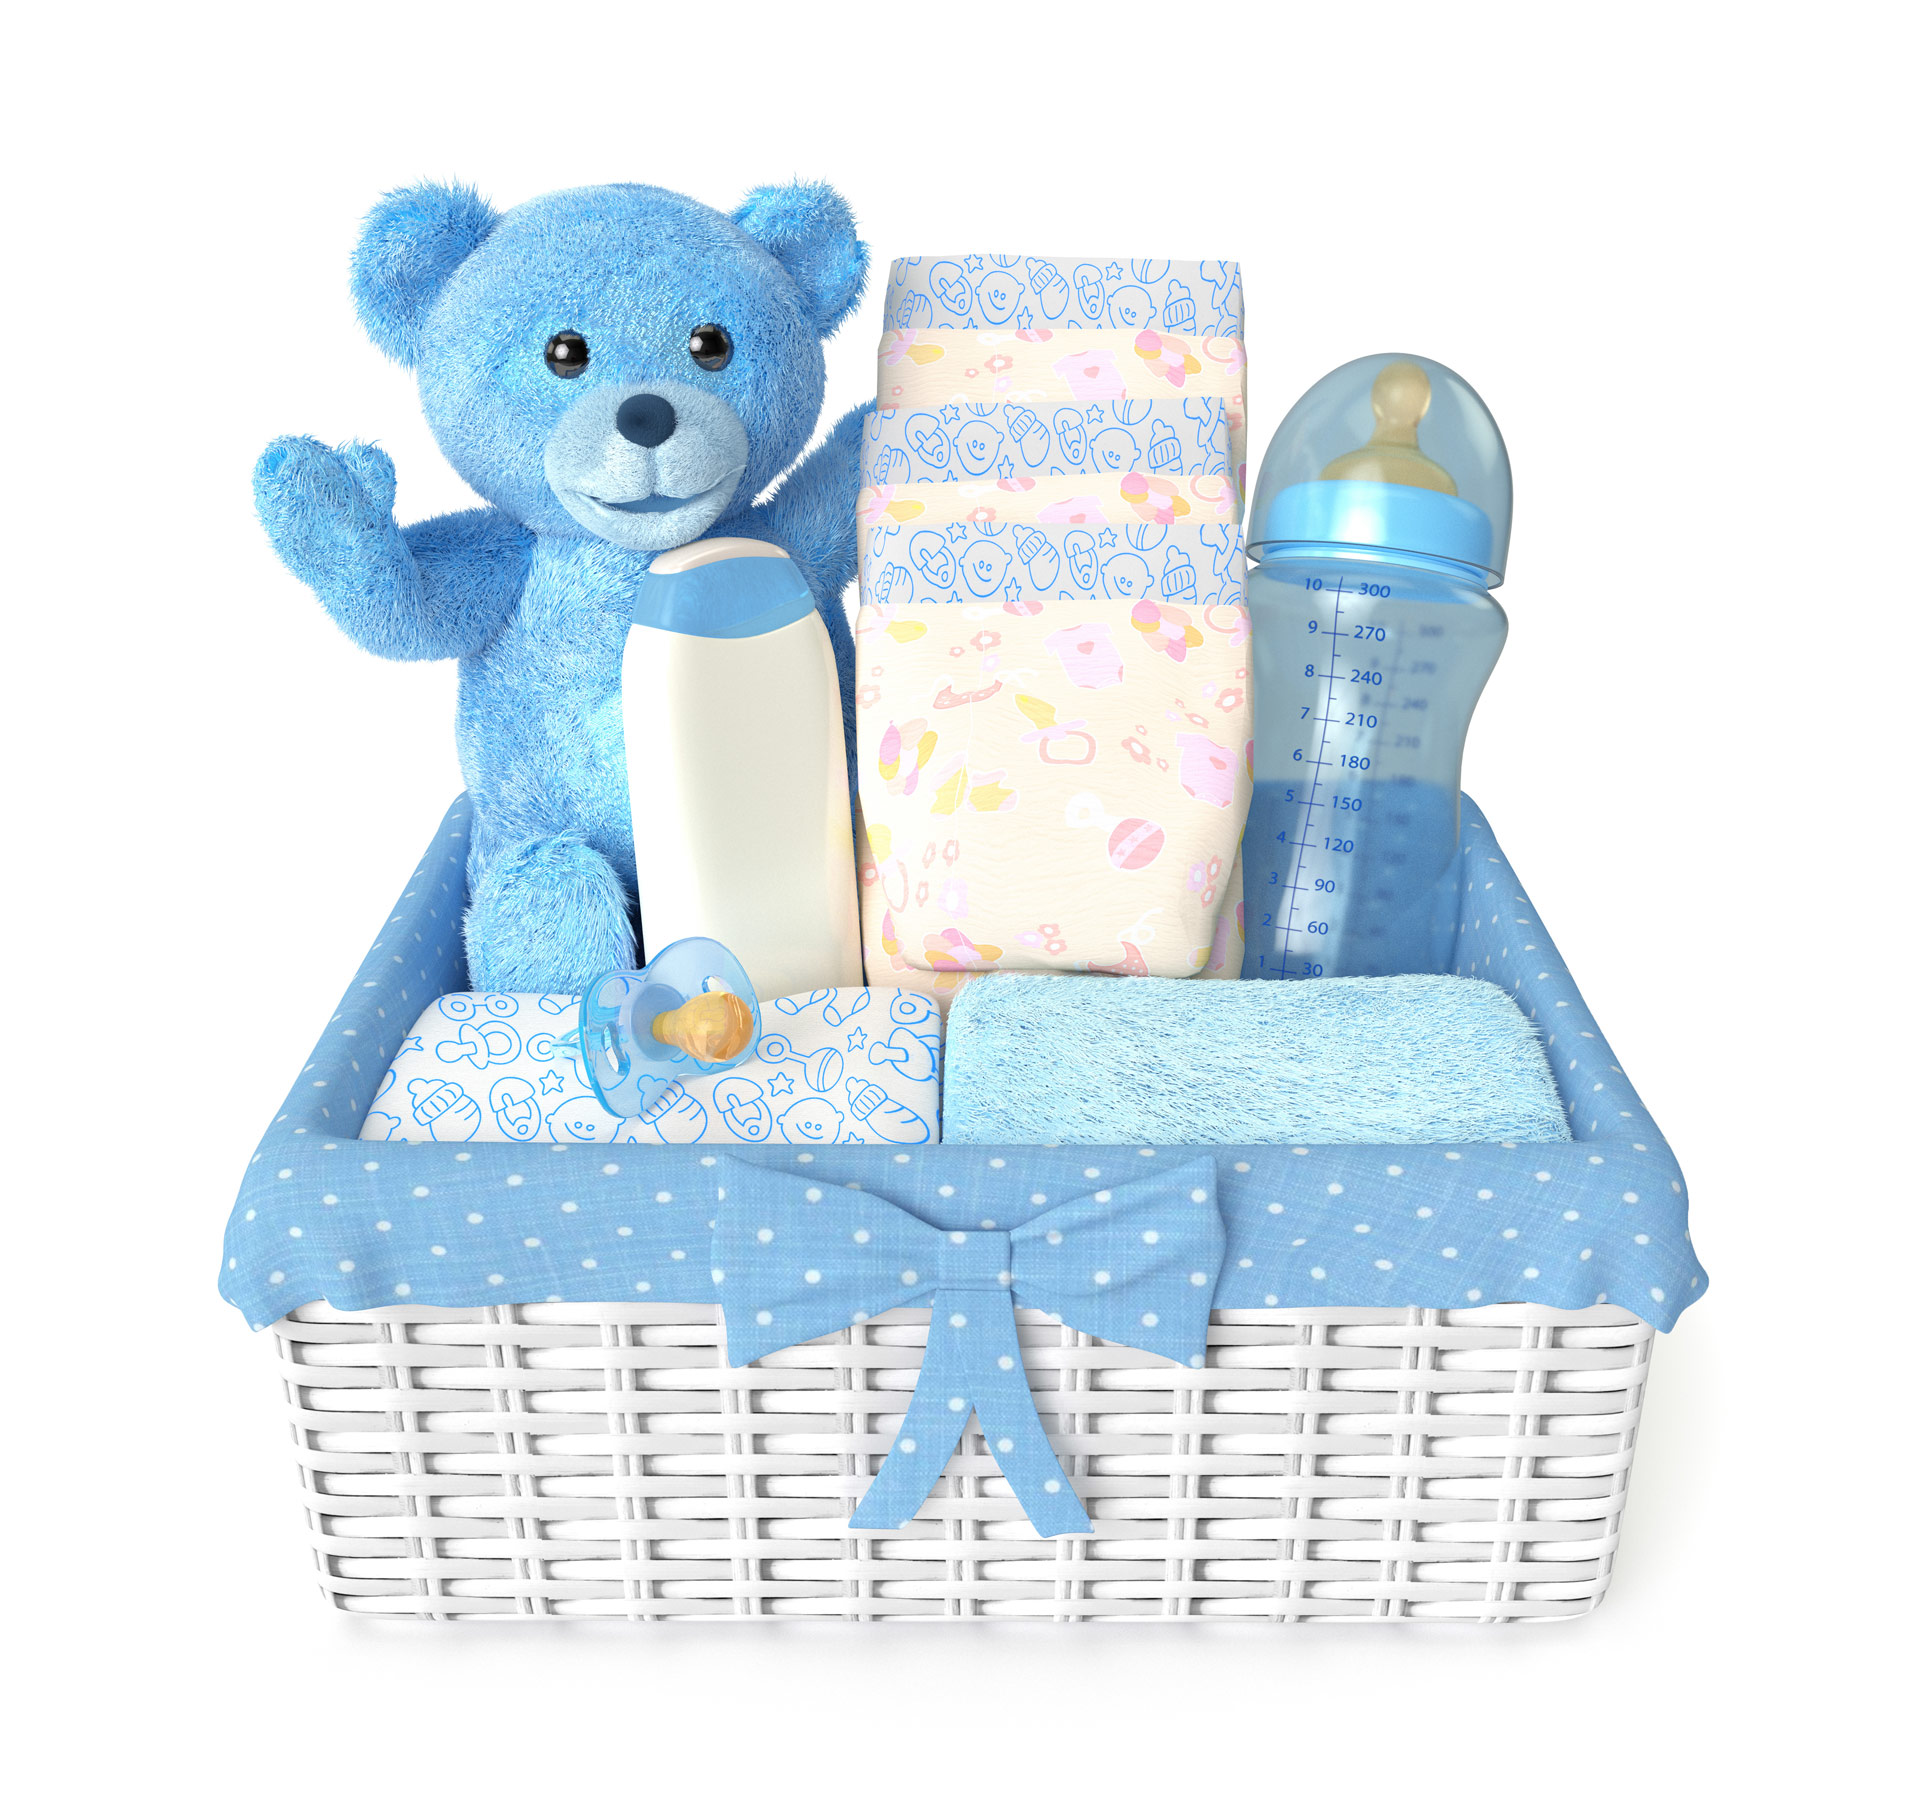 Home / Packaging / Baby Showers / Baby Gift Basket